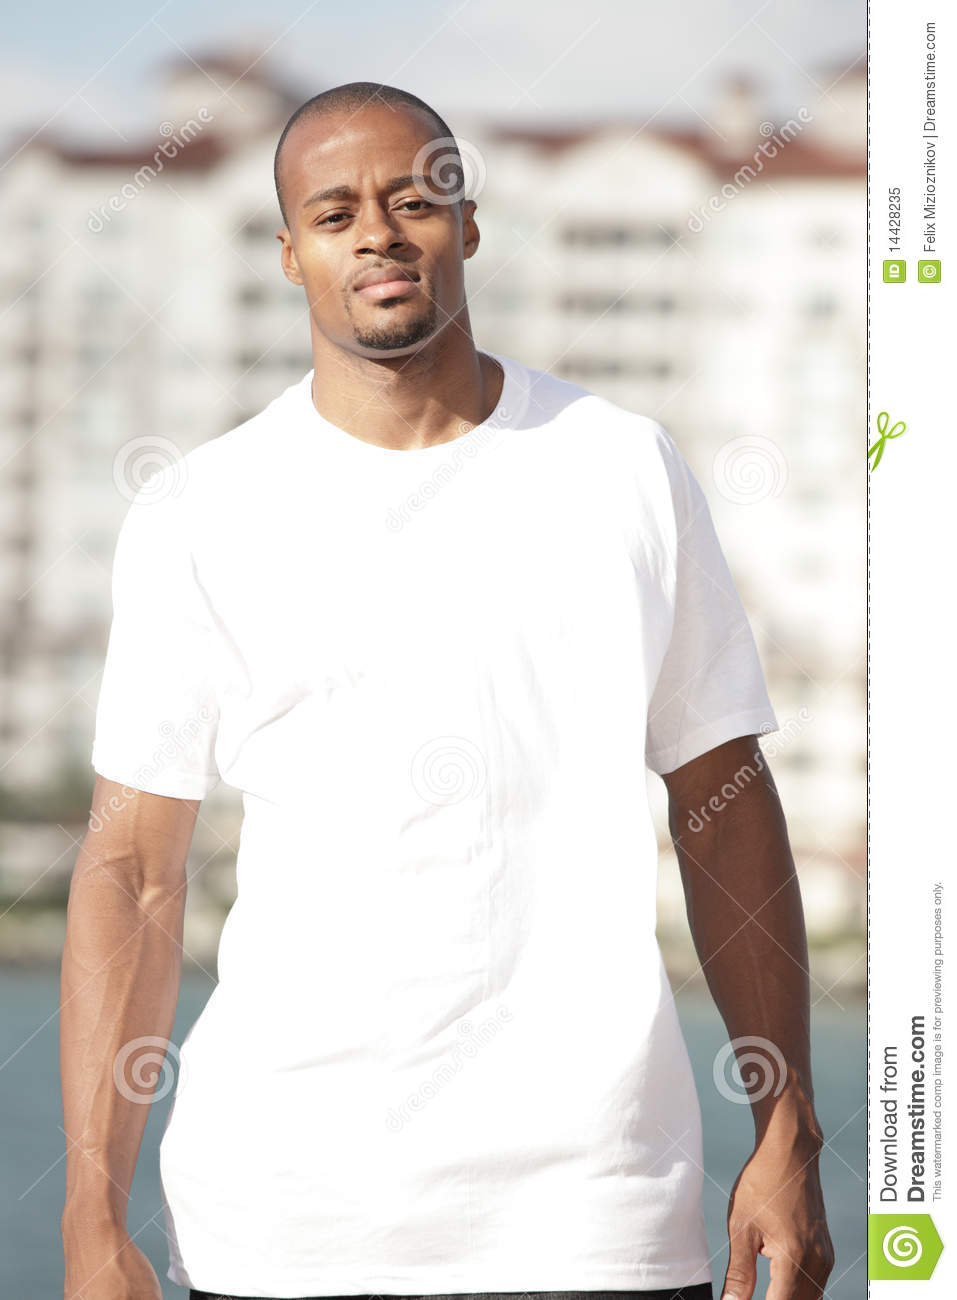 Black man in a white shirt stock image image of bald for Man in white shirt